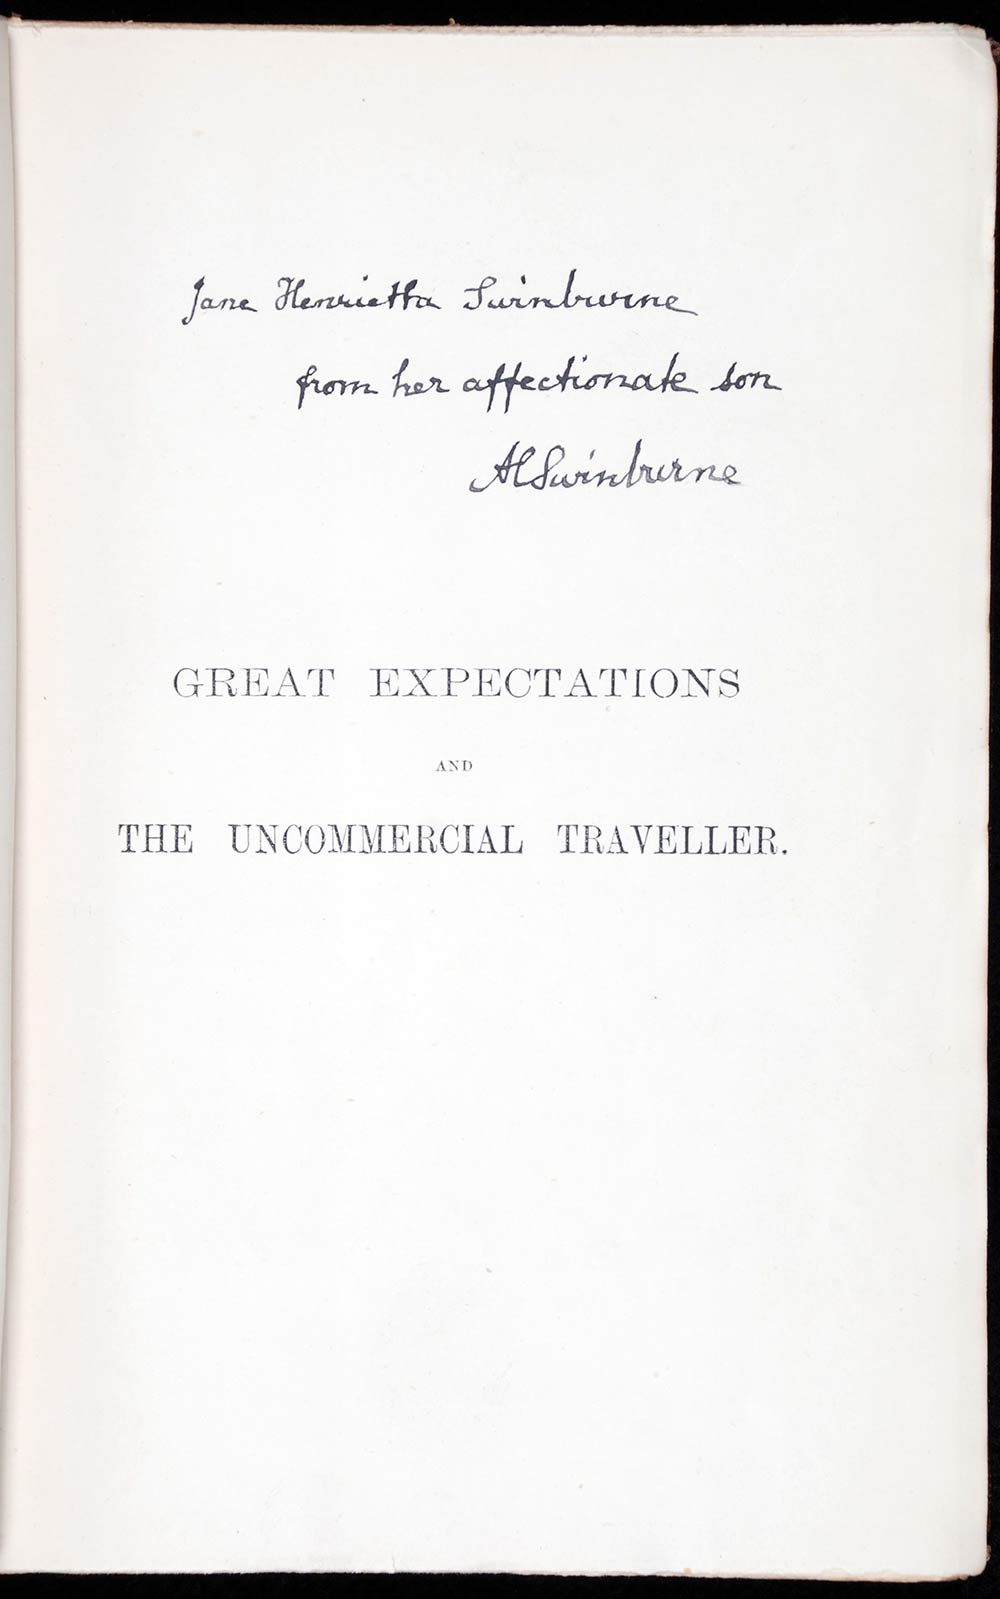 Charles Dickens. <em>Great expectations, and, The uncommercial traveller</em>. Crown edition. London: Chapman & Hall, 1891.